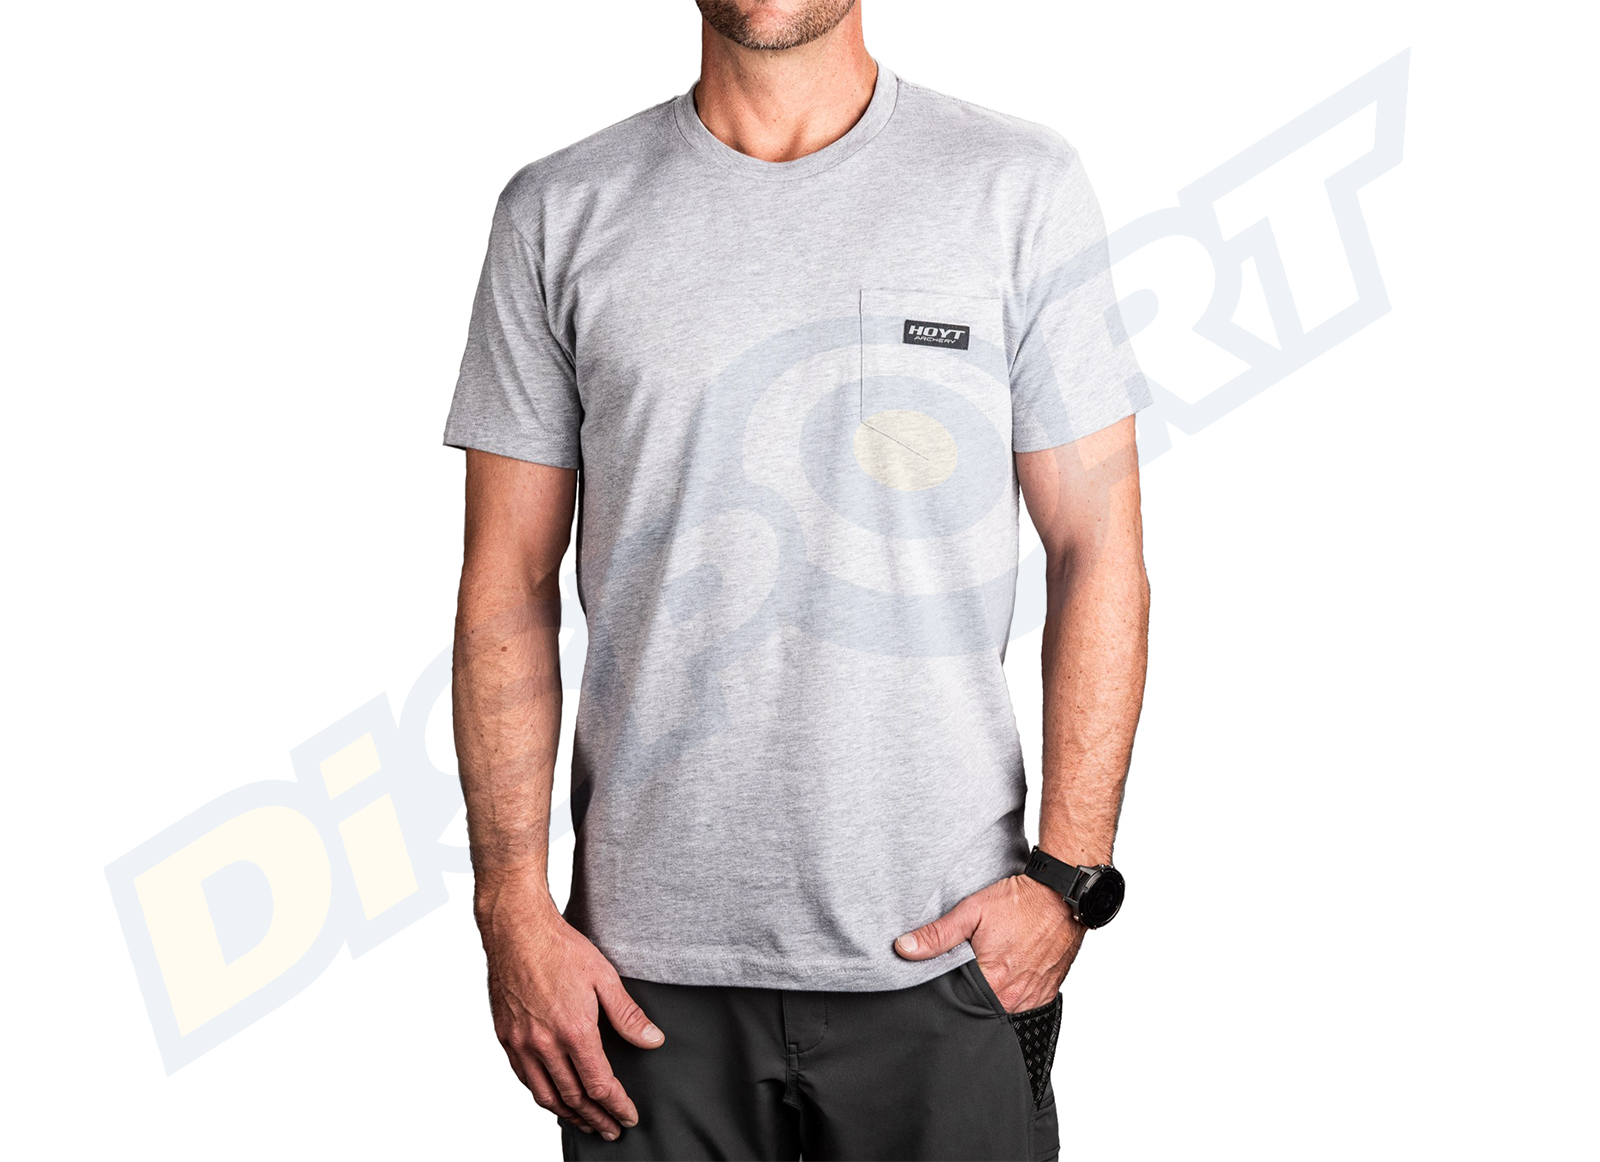 HOYT T-SHIRT UOMO POCKET PATCH